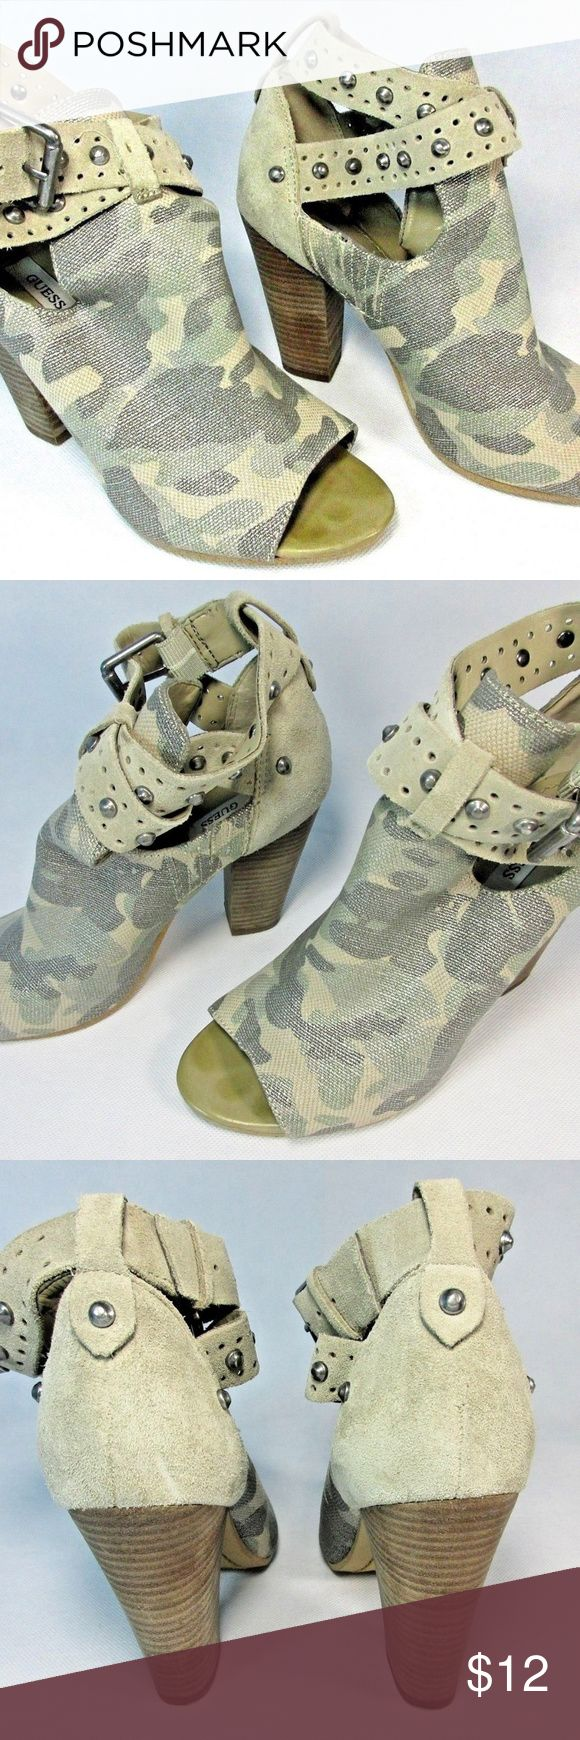 Guess Bagent Silver Studded Camo Ankle Booties 6.5 Guess Bagent Cutout Silver Studded Camo Military Ankle Booties Size 6.5 M. A stain and wearing on inside right shoe insole (pics). Otherwise in nice used condition. Guess Shoes Ankle Boots & Booties